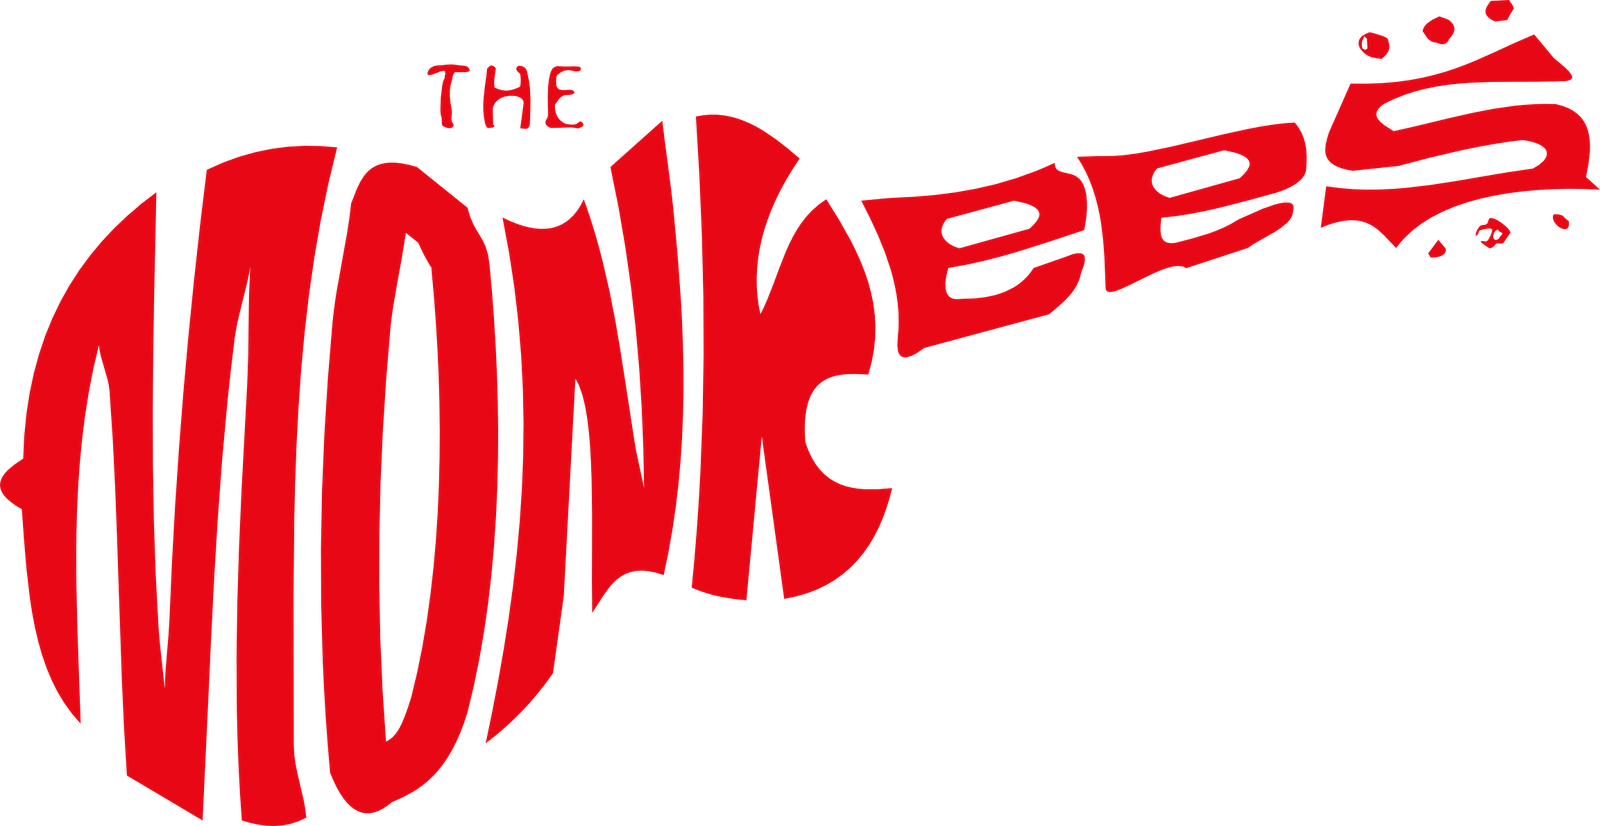 The Monkees Logo The Monkees Guitar Logo Pop Posters